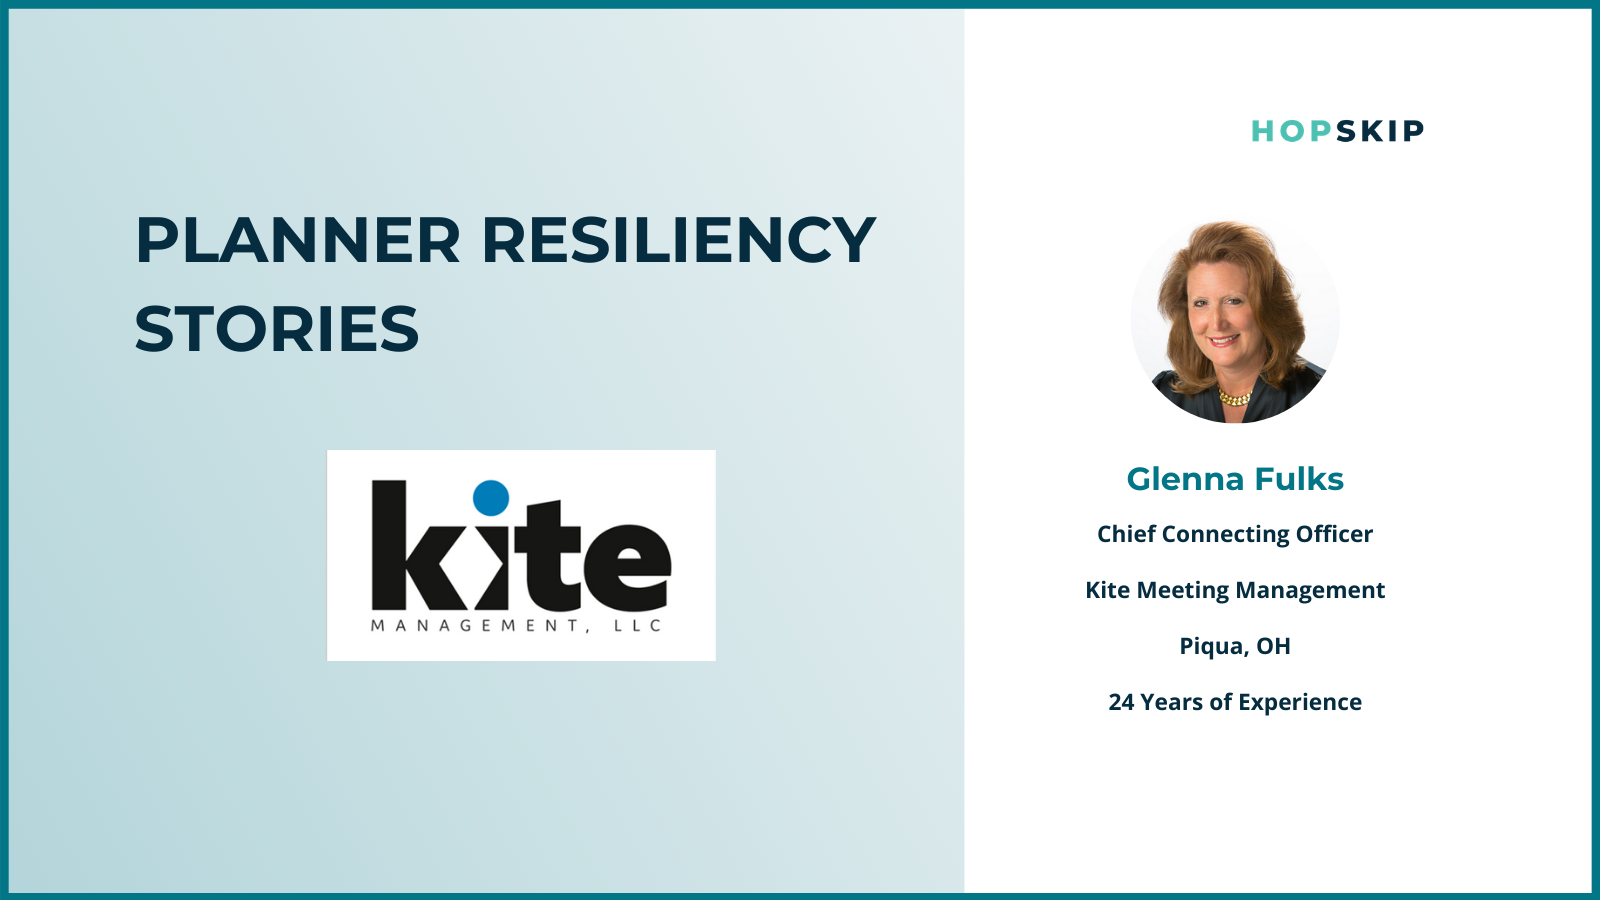 Glenna Fulks from Kite Meeting Management talks about how she displayed resilience during COVID-19